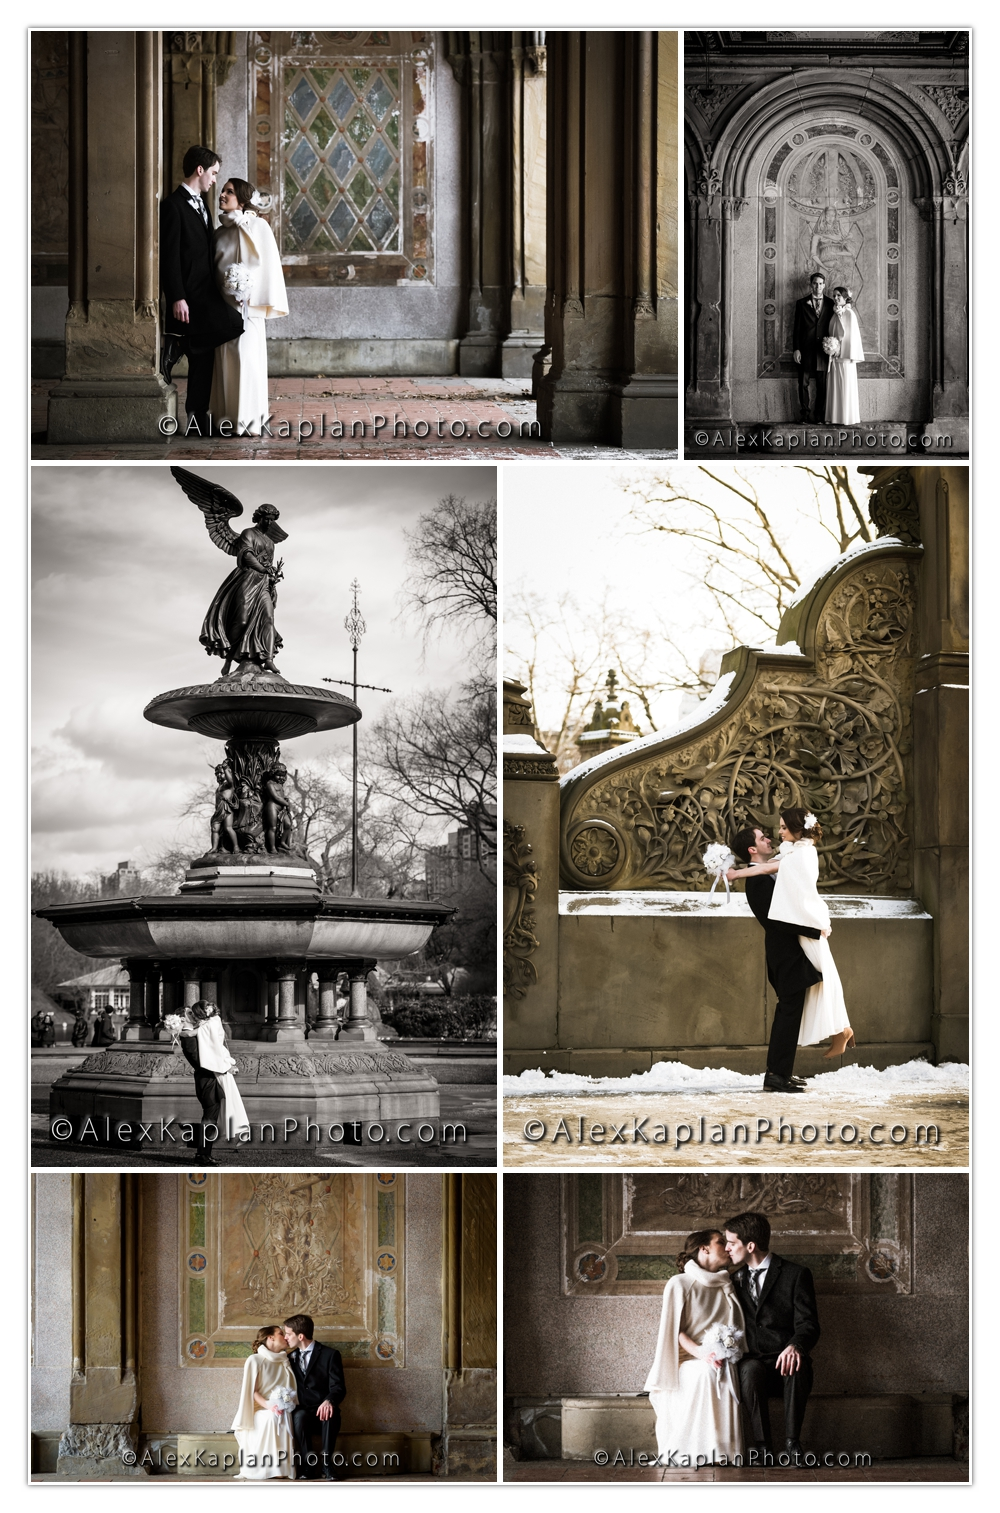 Central Park New York City Bride and Groom Photo Shoot